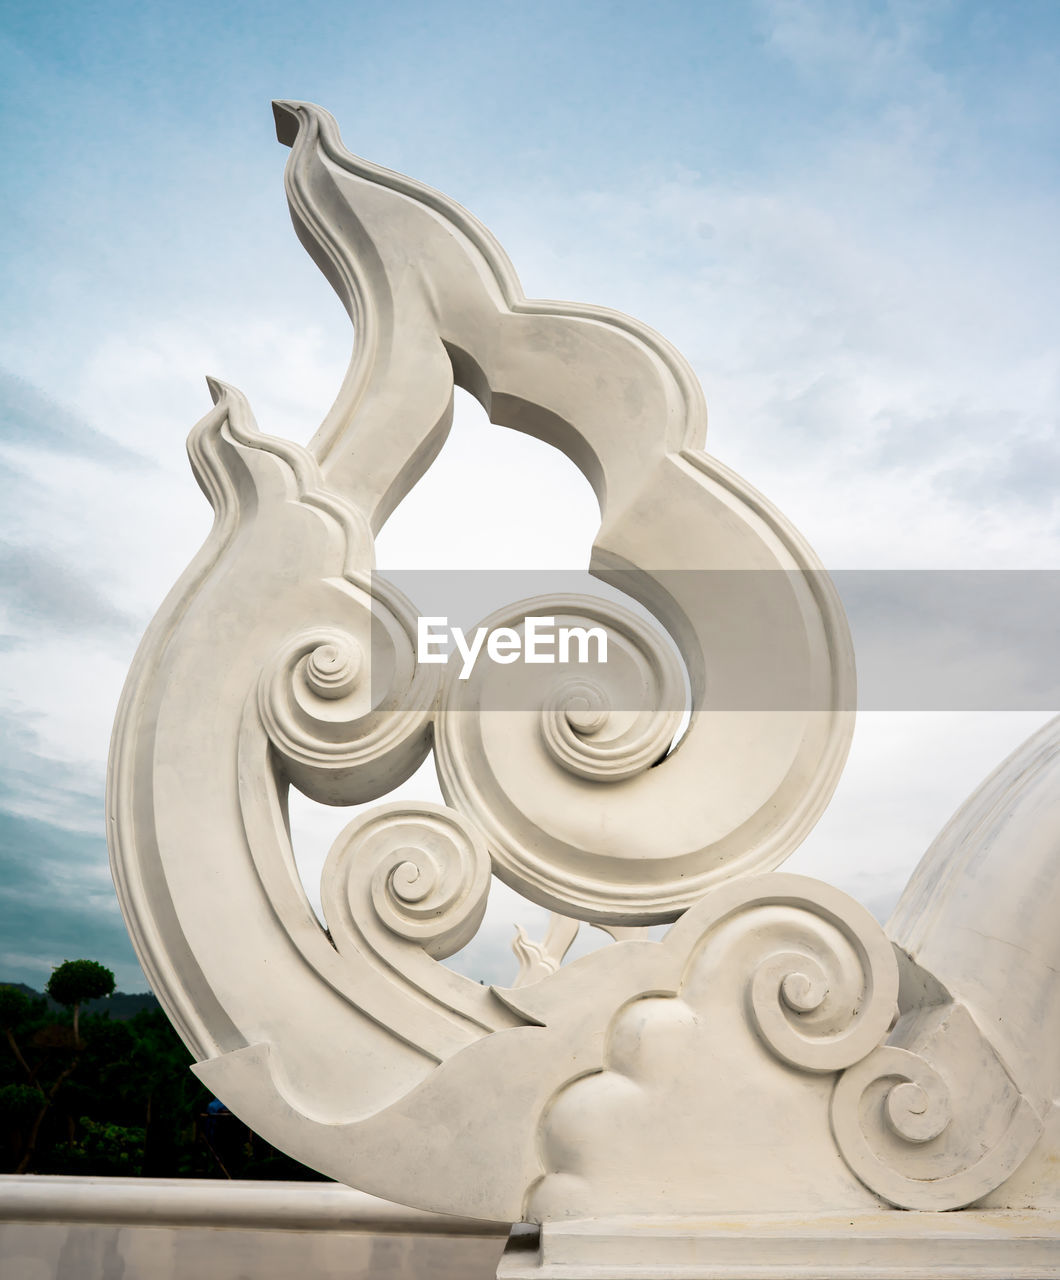 cloud - sky, sky, art and craft, white color, no people, day, creativity, pattern, low angle view, nature, sculpture, craft, design, close-up, architecture, outdoors, carving - craft product, metal, focus on foreground, built structure, silver colored, ornate